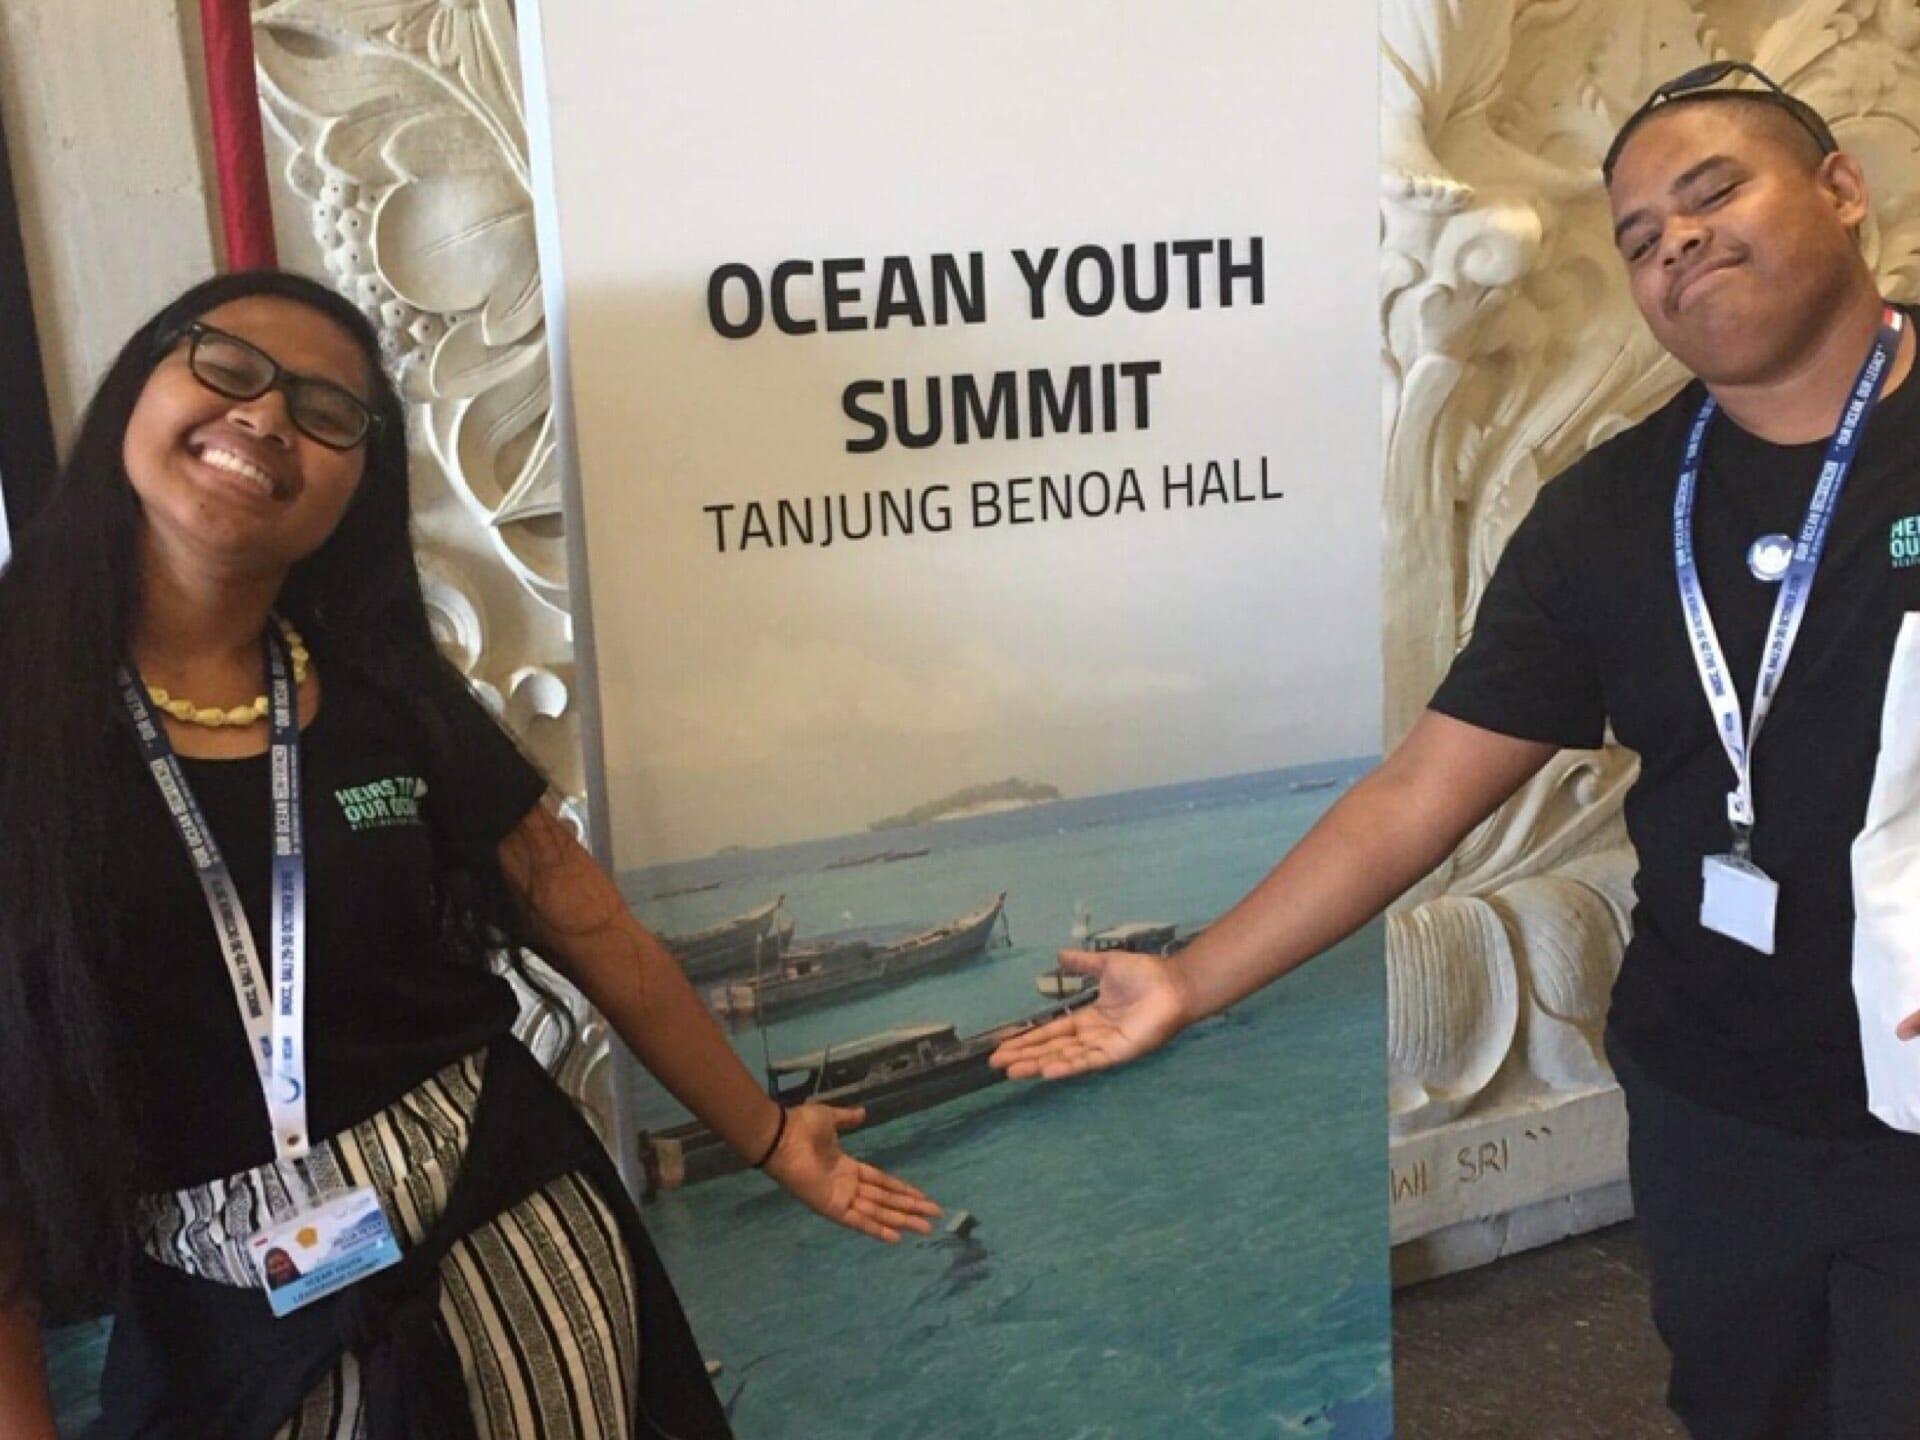 TWO ISLANDERS TO OUR OCEAN YOUTH SUMMIT